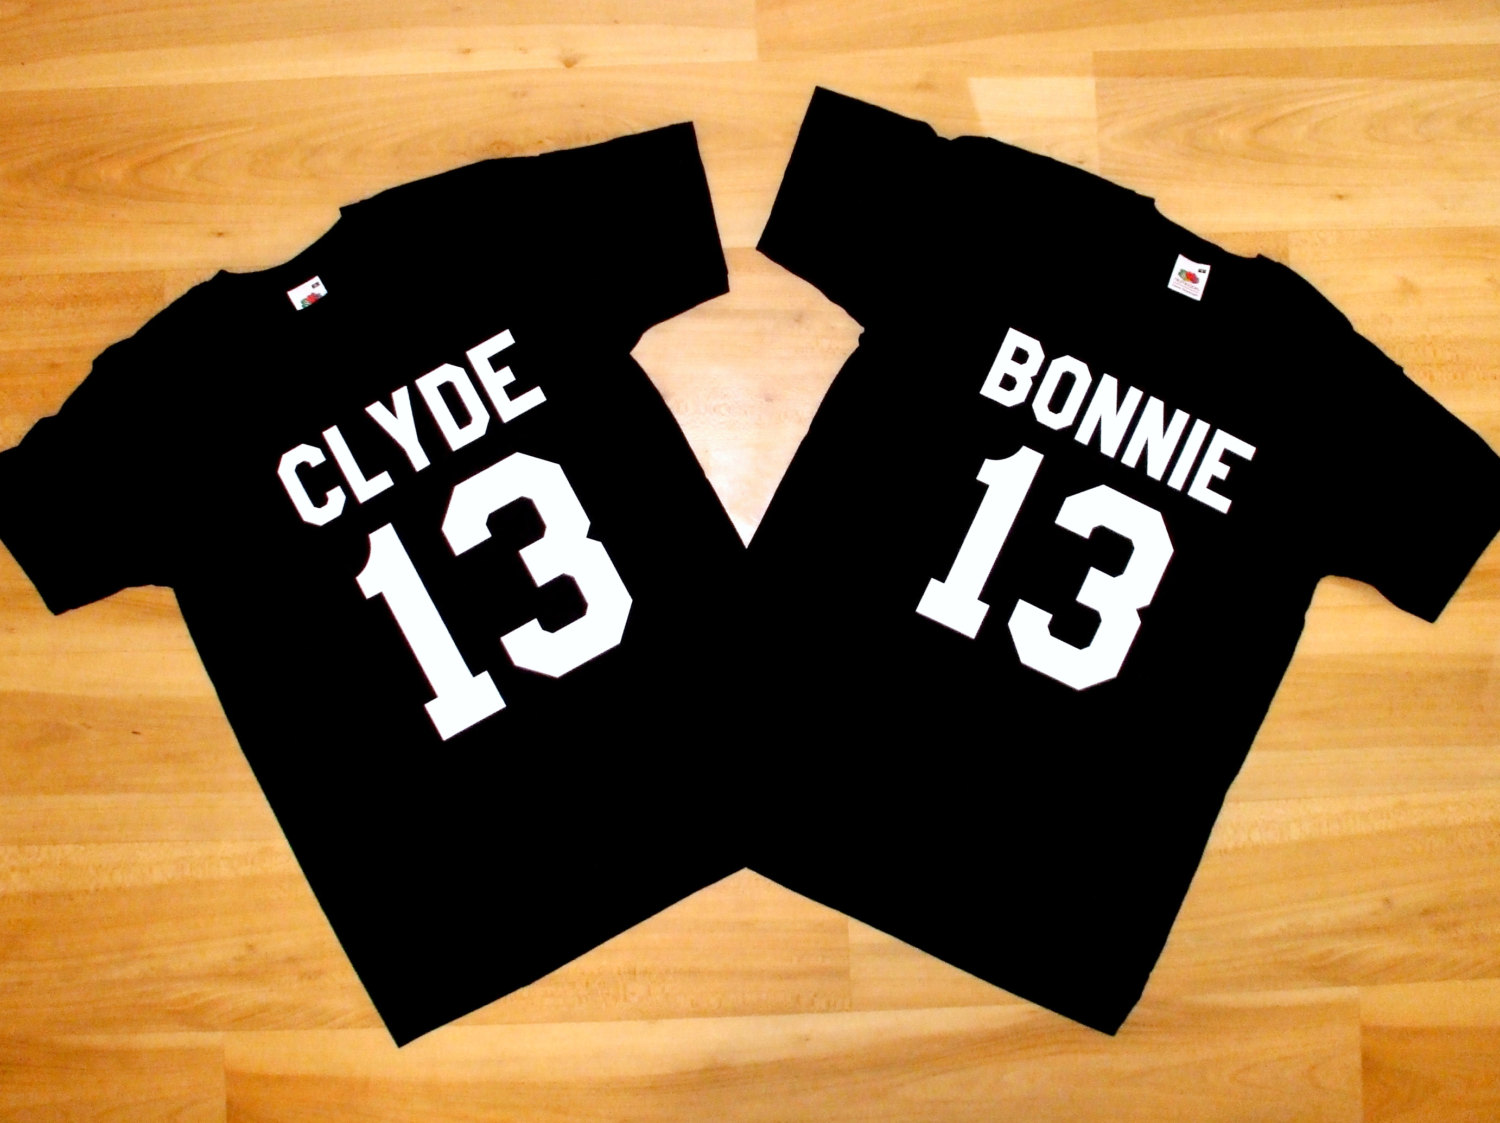 t shirts bonnie and clyde couple shirts bonnie and clyde. Black Bedroom Furniture Sets. Home Design Ideas